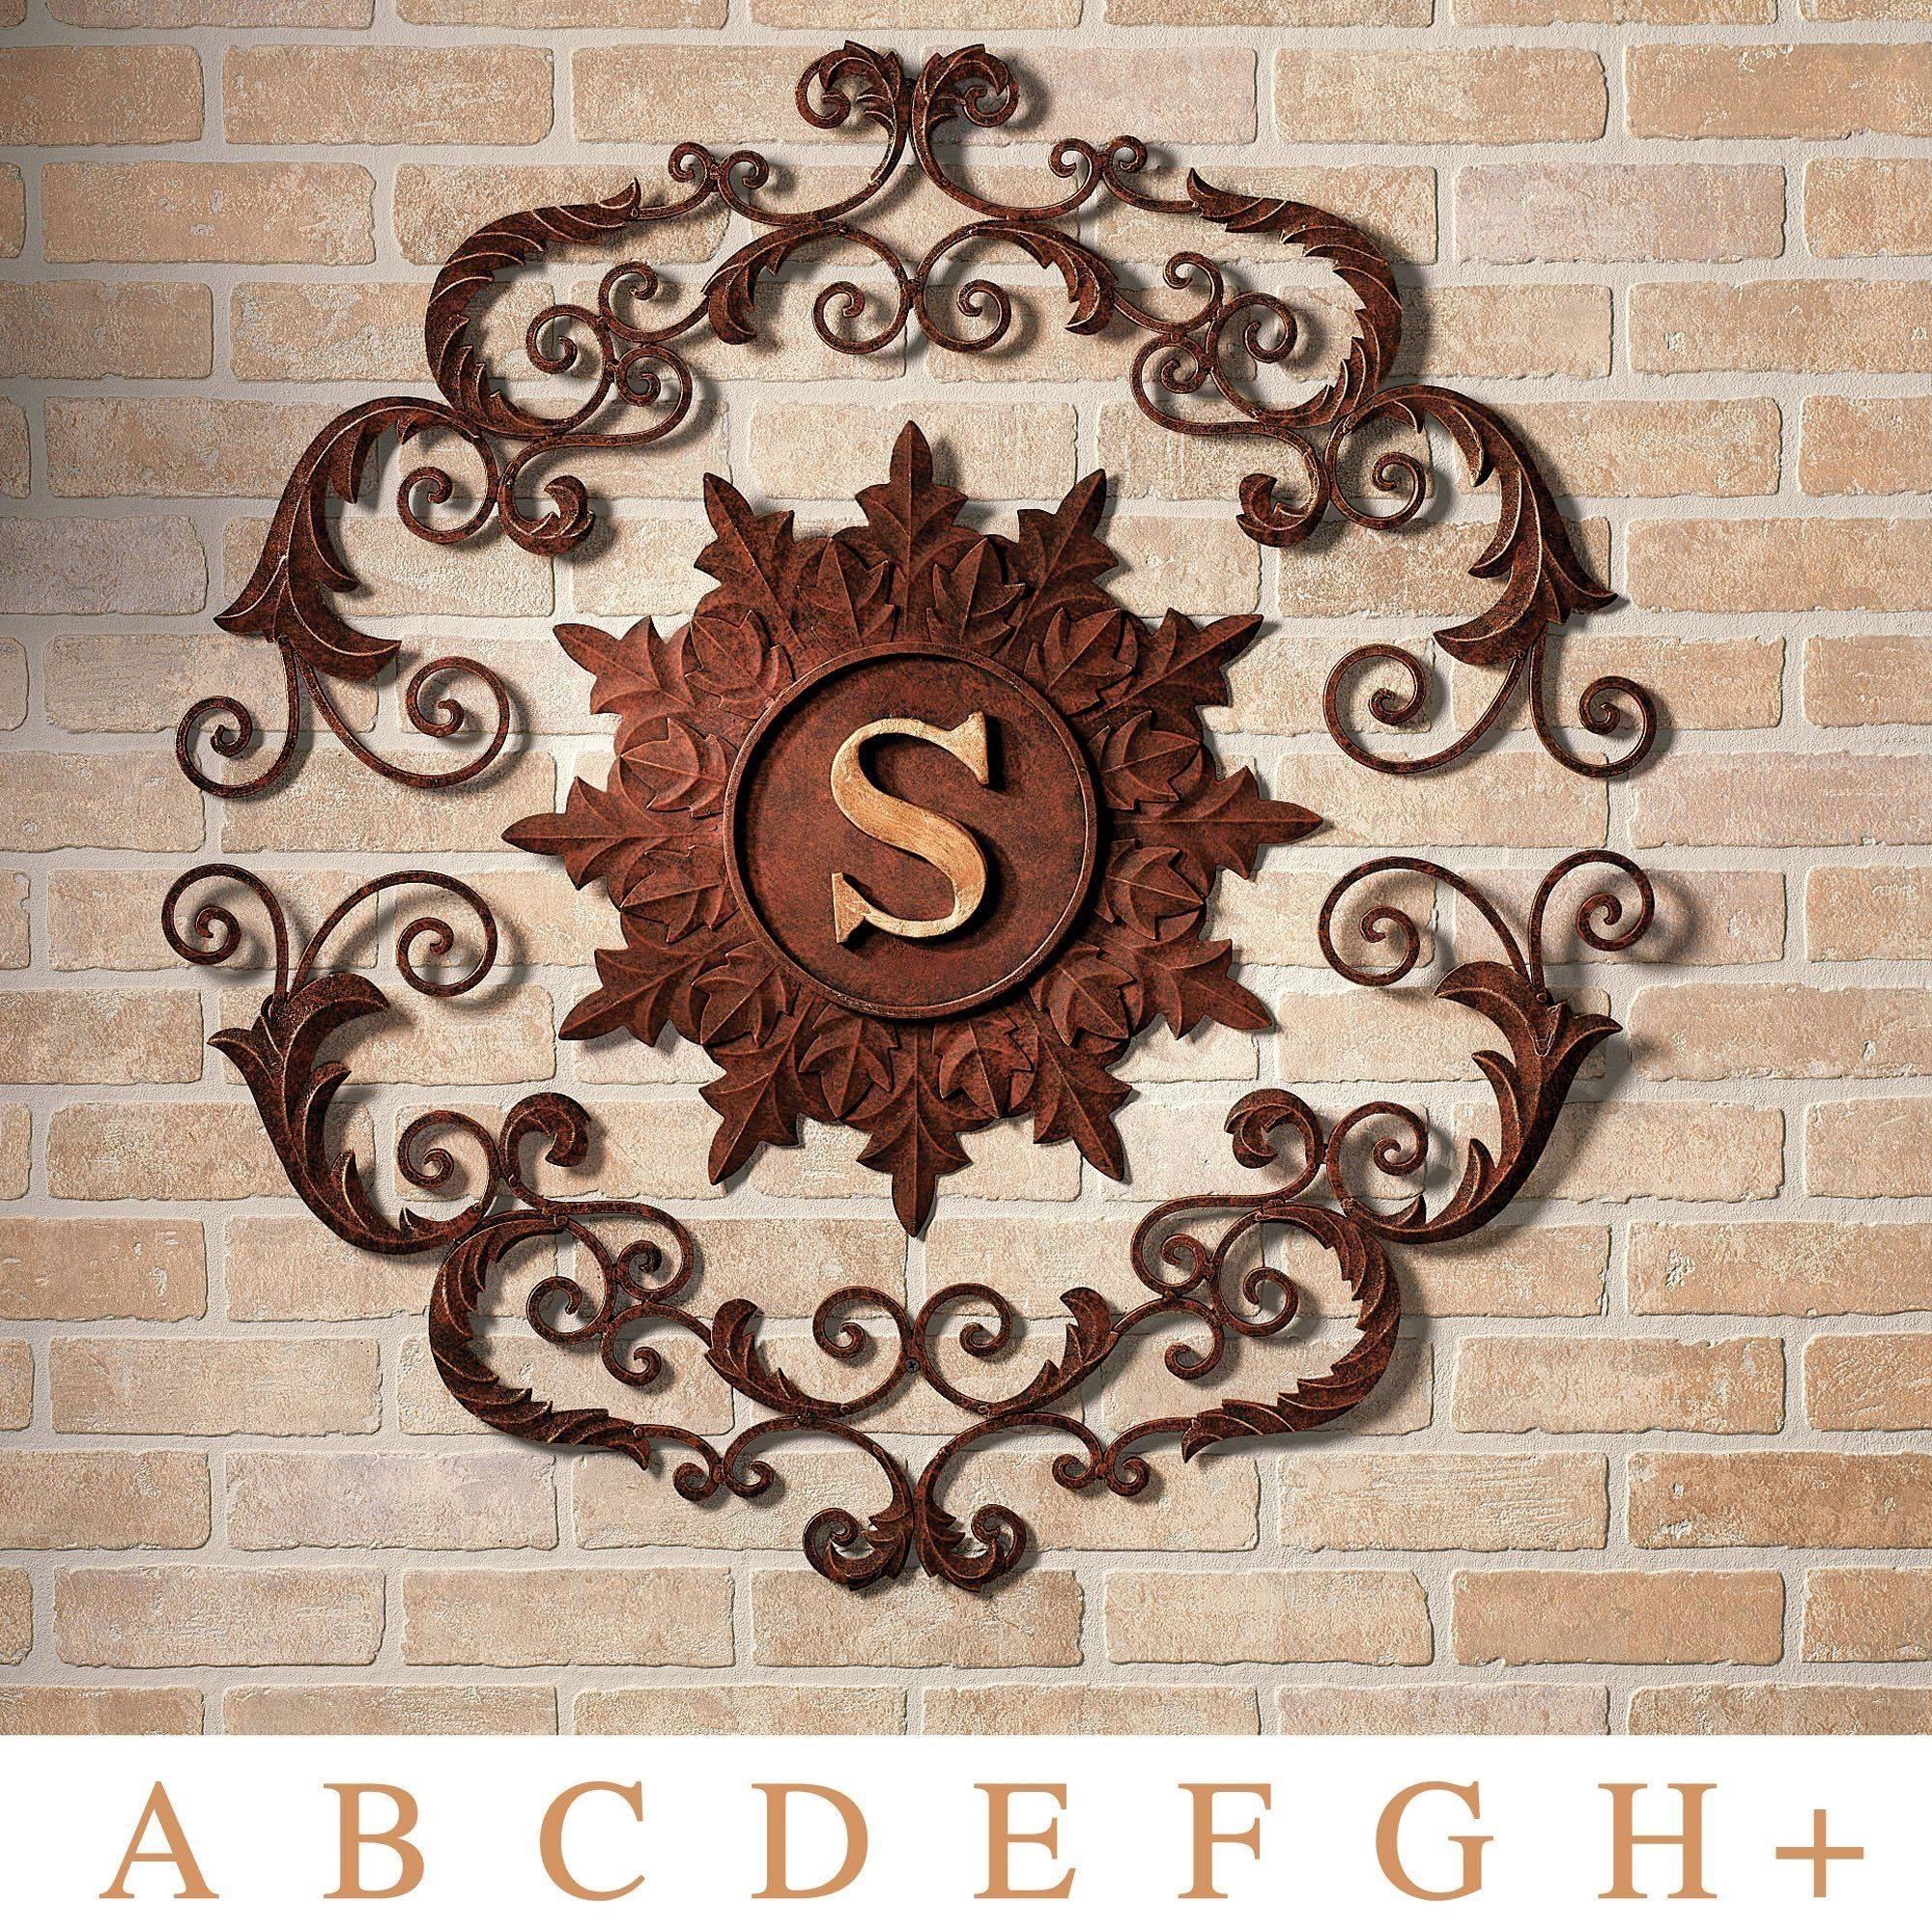 Kingston Monogram Metal Wall Grille For Latest Metal Wall Art For Outdoors (Gallery 4 of 20)